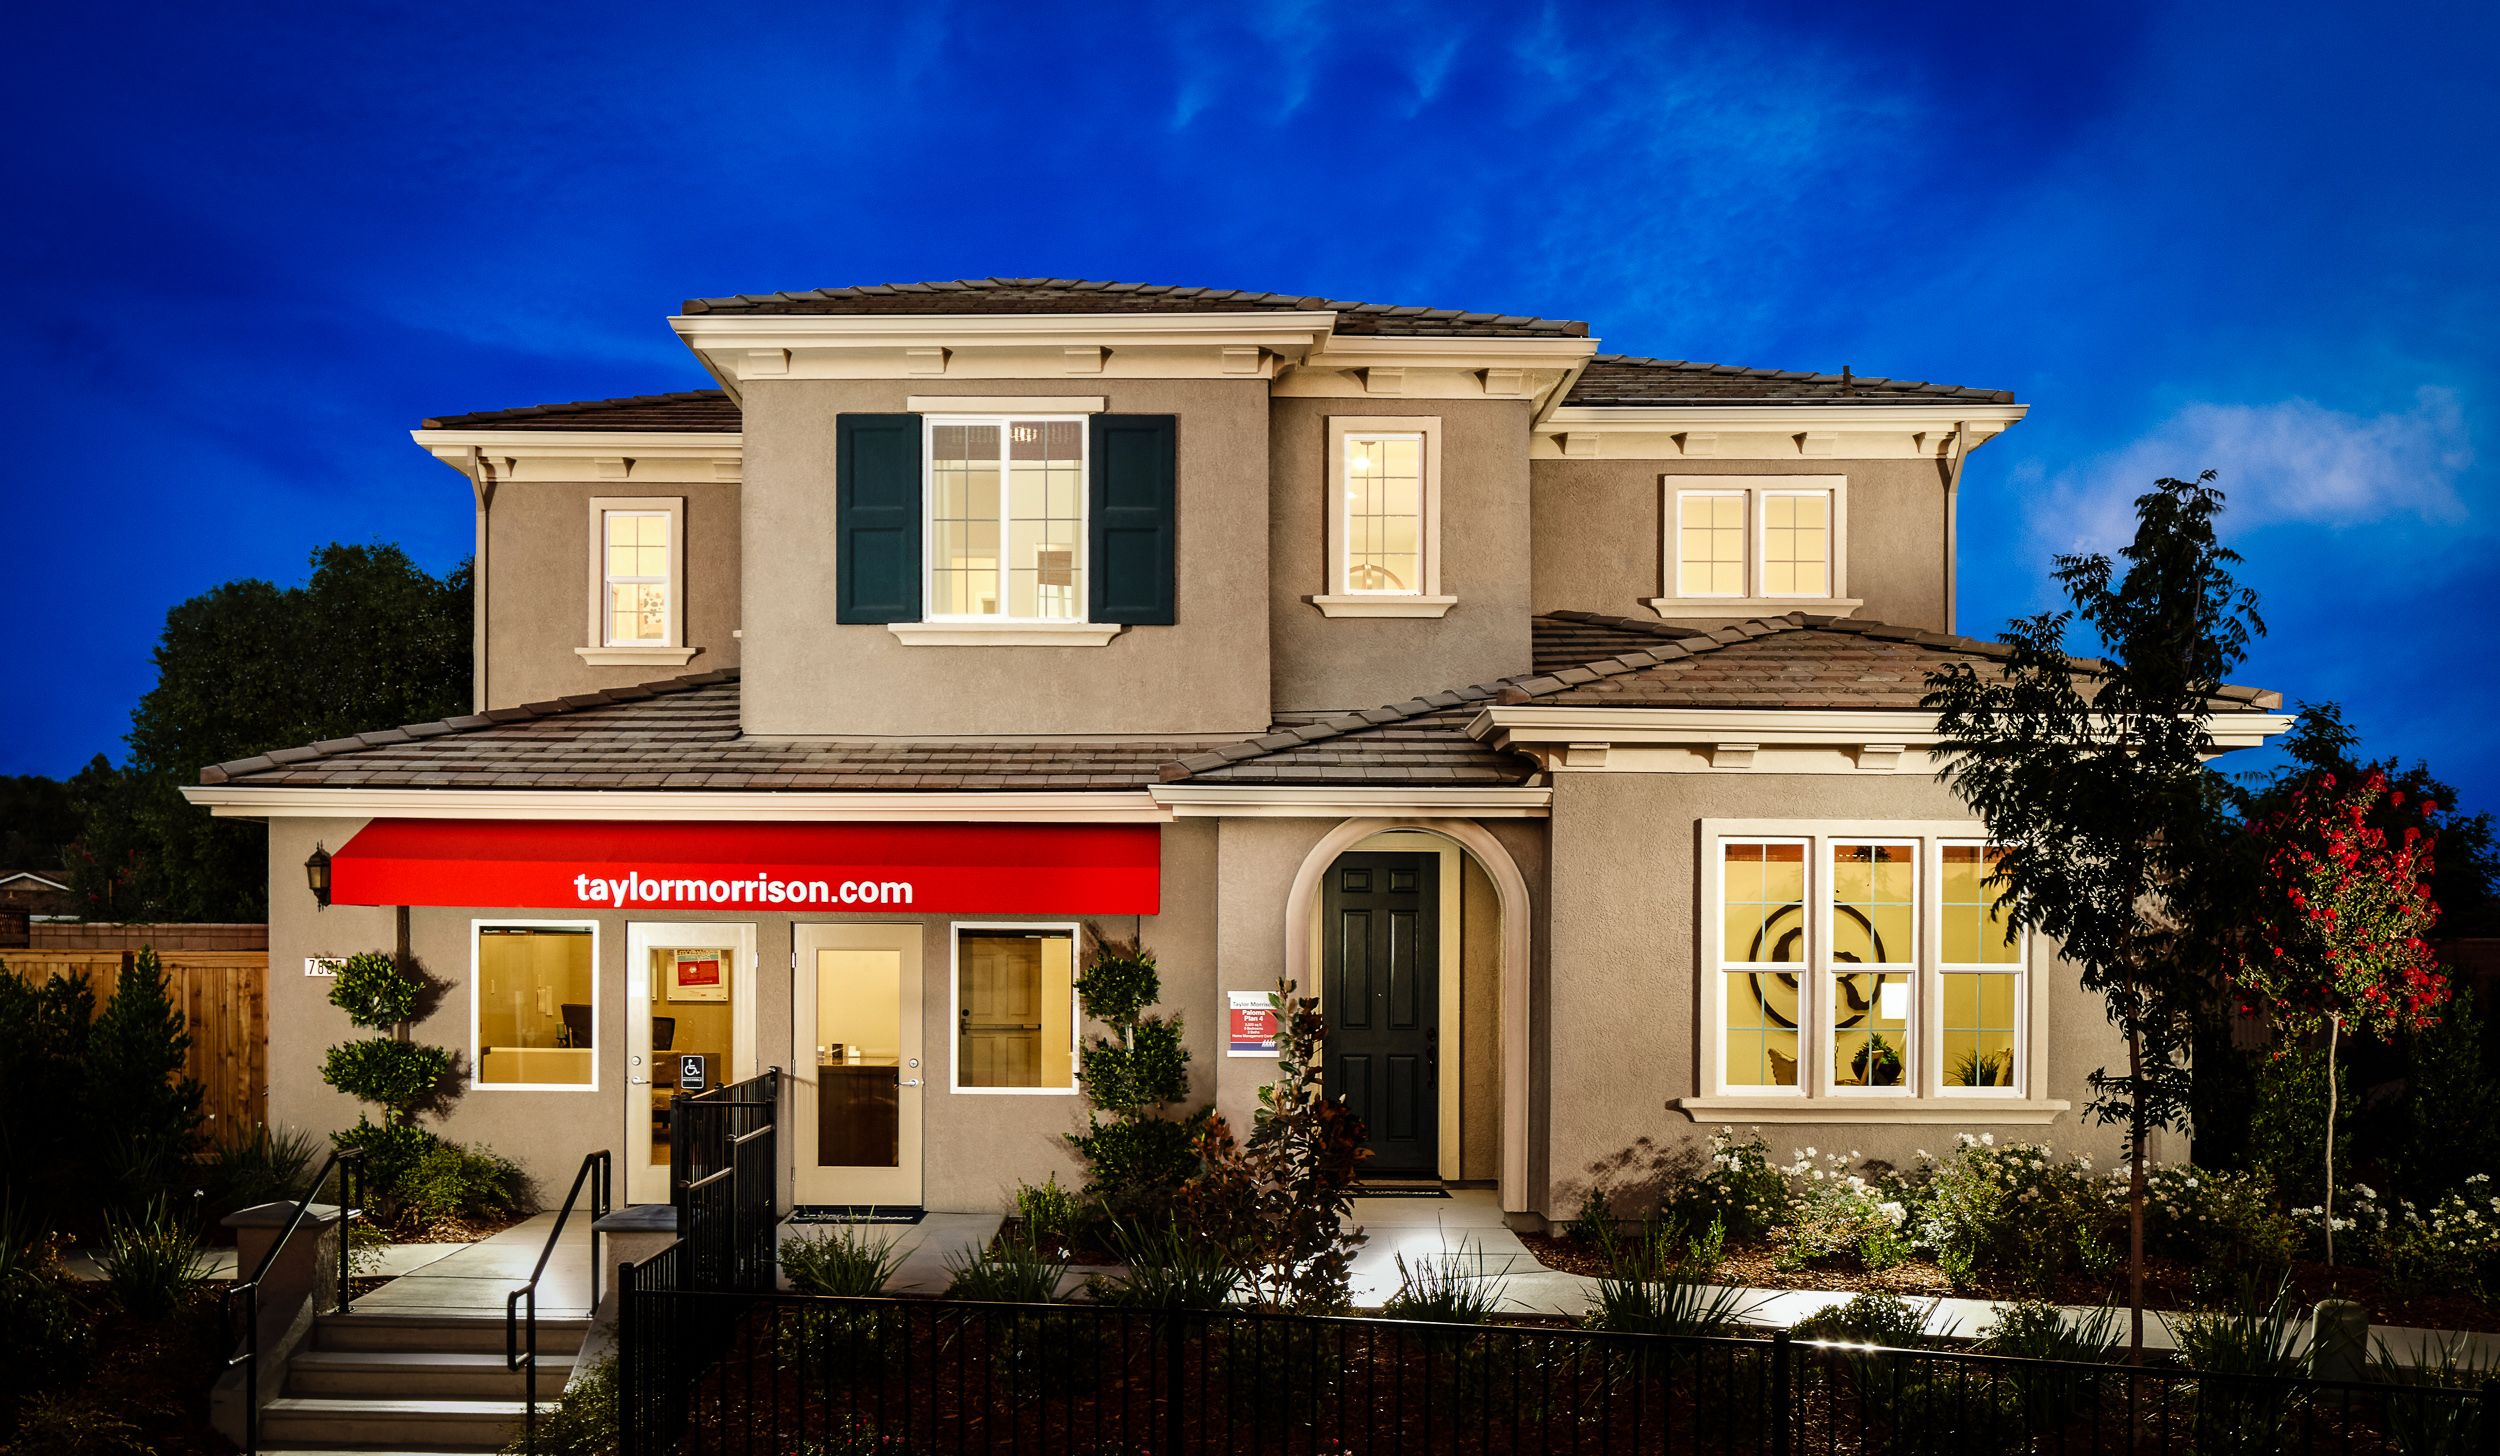 A place youll love calling home curbappeal newhome